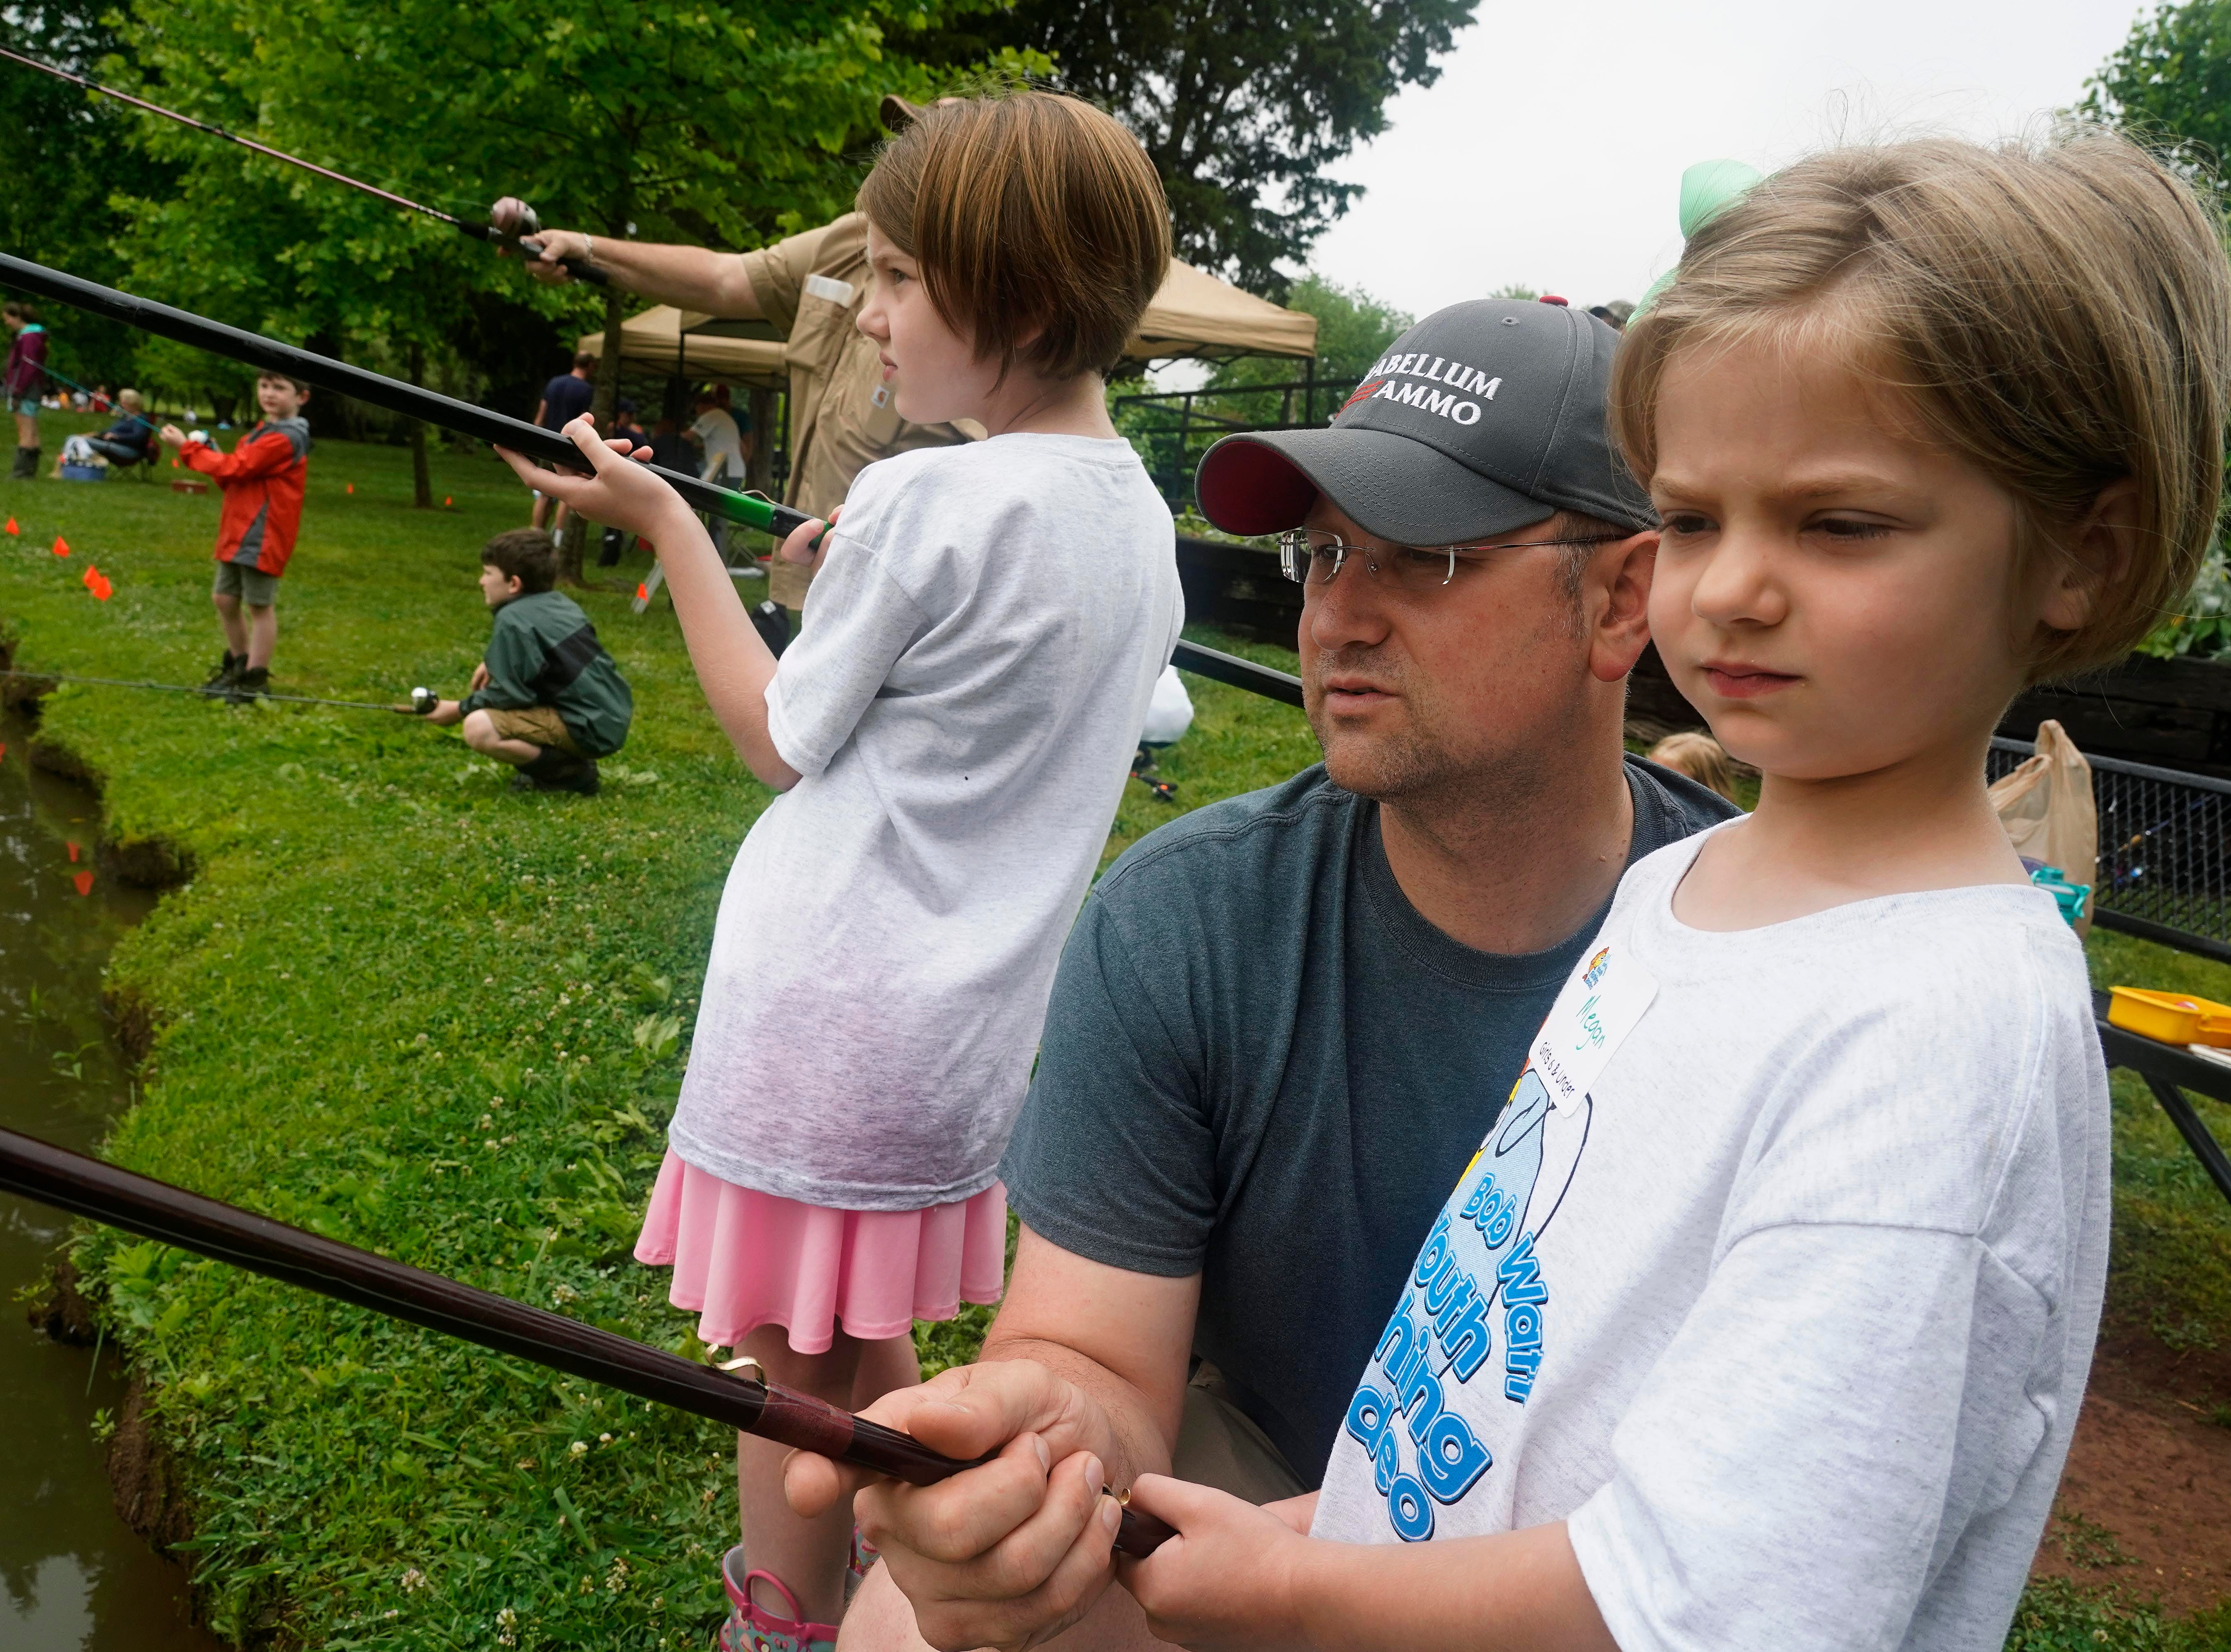 Abigail and Megan fish with their father Ryan Patrick during  the 35th Annual Bob Watt Youth Fishing Rodeo Saturday, May. 11, 2019 at Anchor Park on Turkey Creek Road.